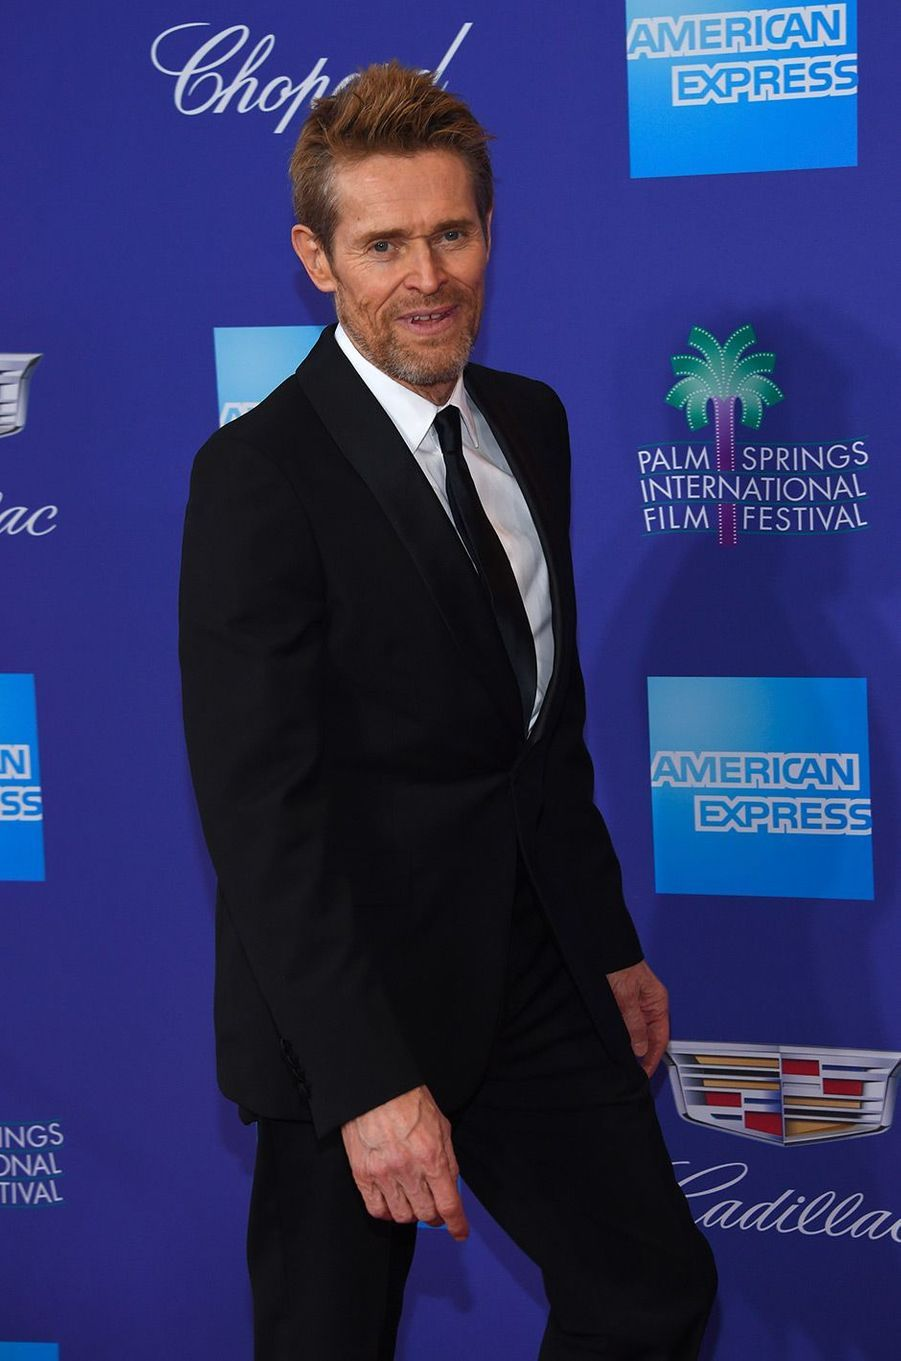 Willem Dafoe au Festival International du film de Palm Springs, mardi 2 janvier